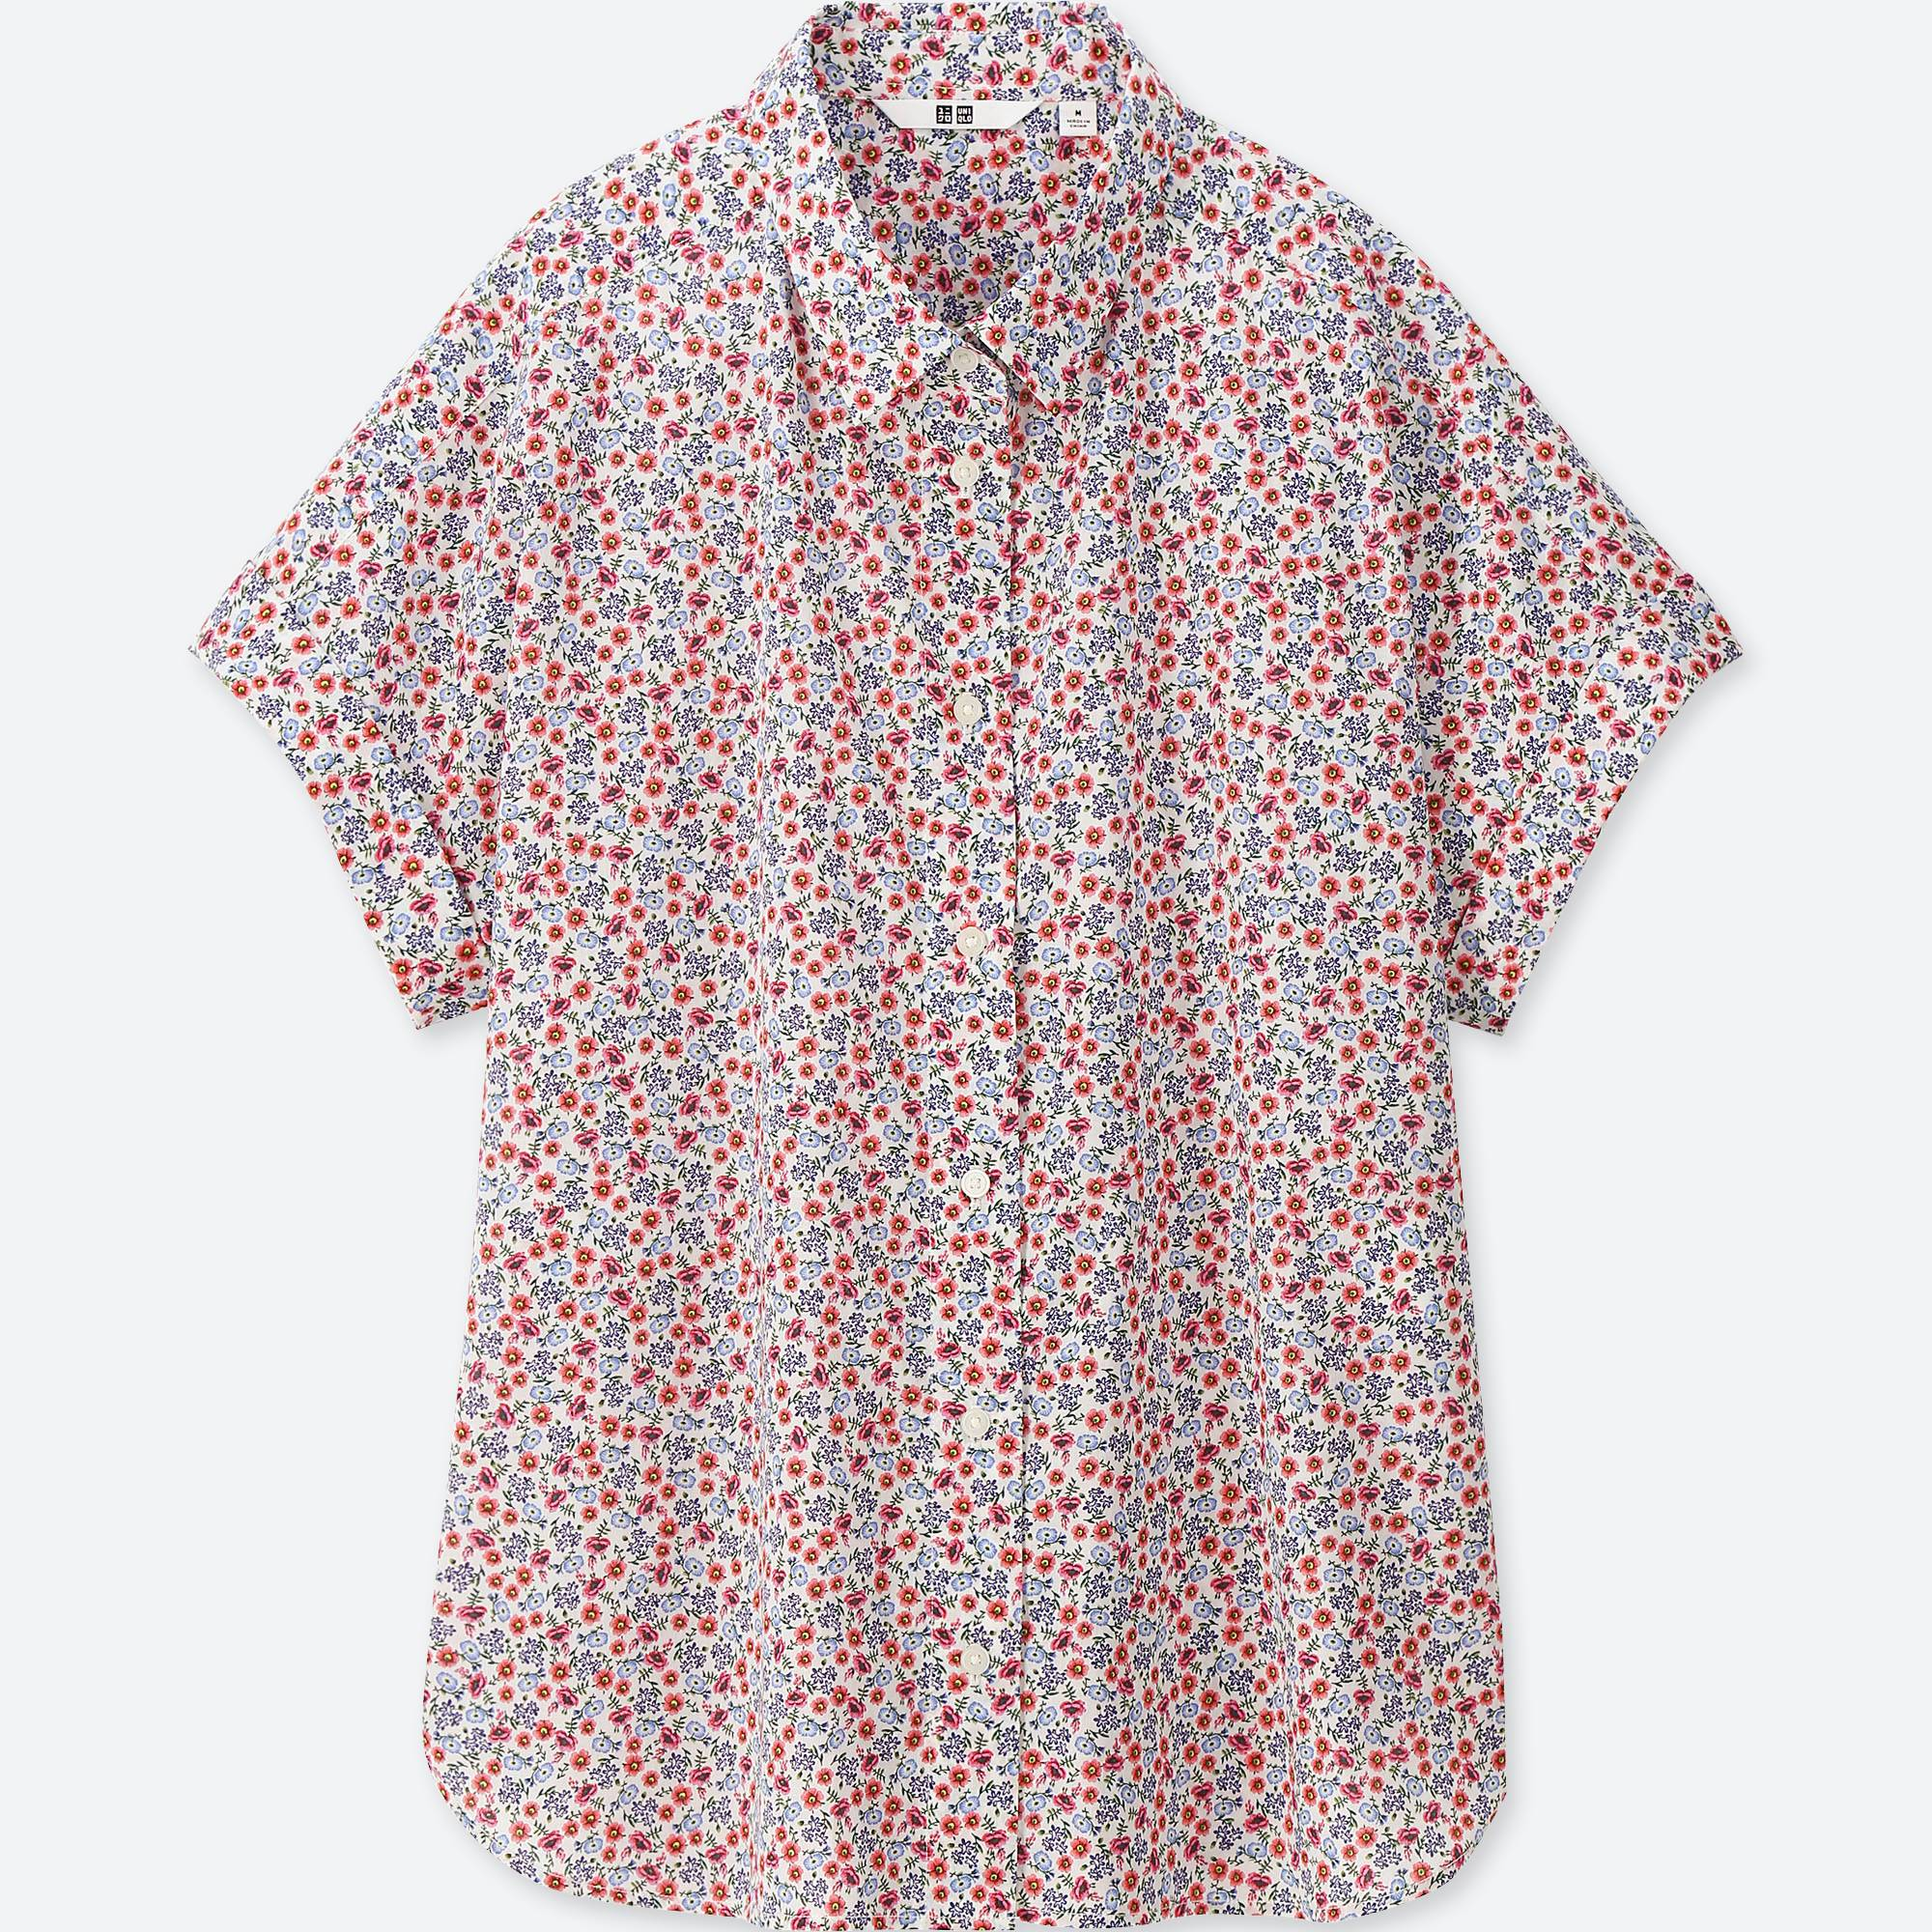 UNIQLO / Shirts And Blouses women soft cotton printed short-sleeve shirt